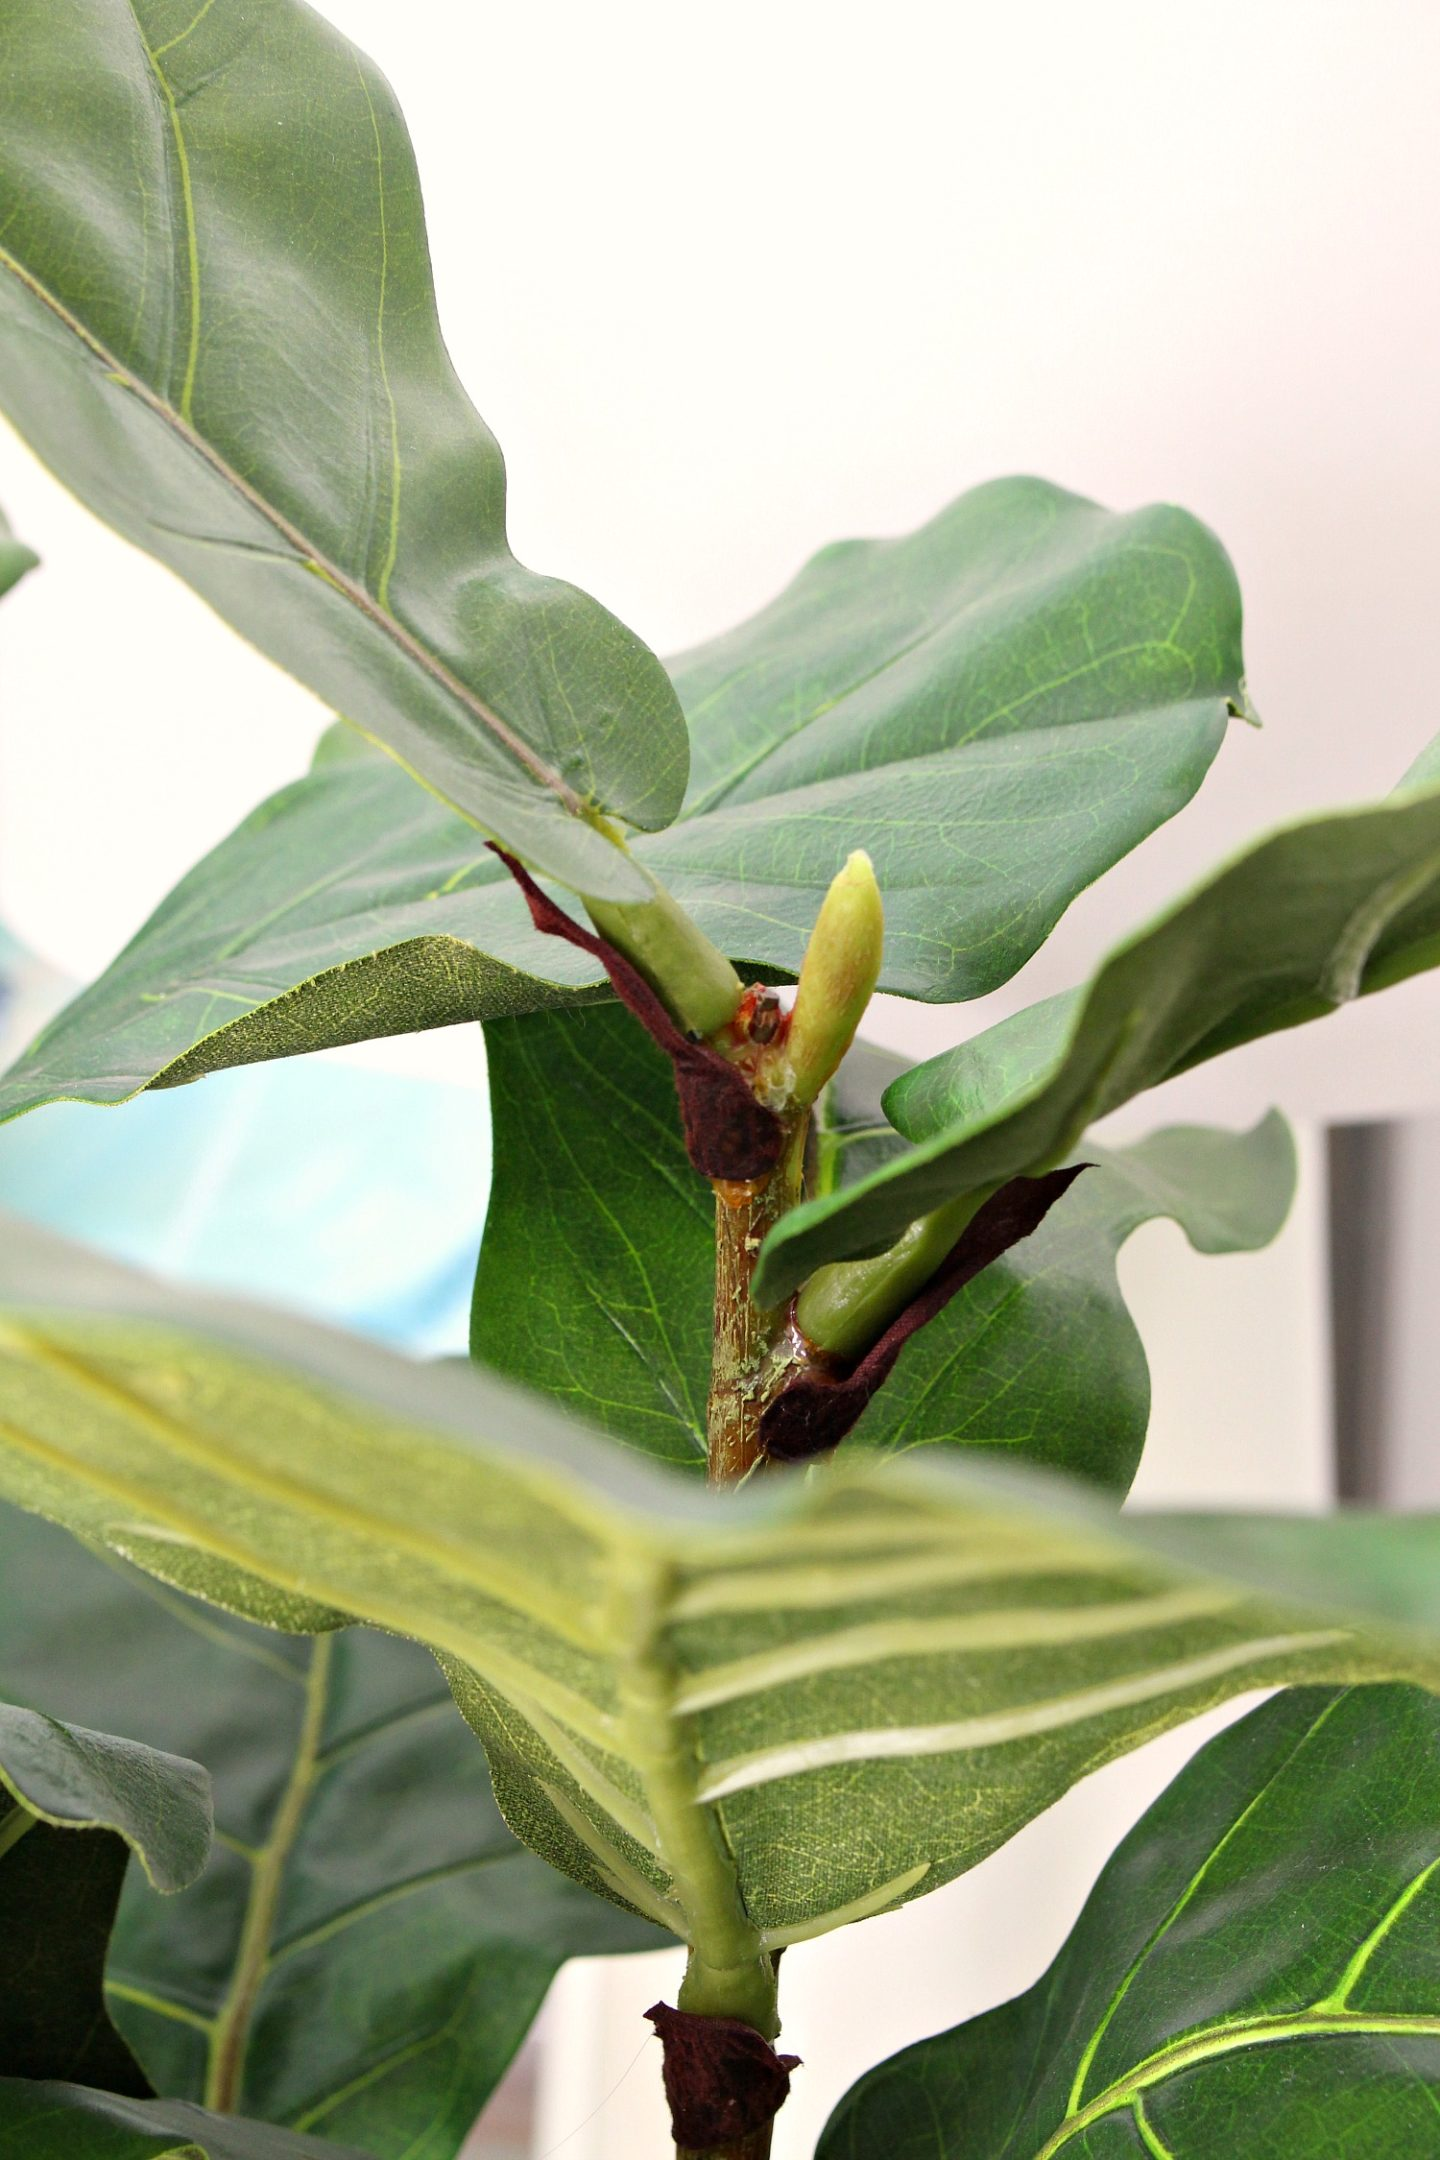 Realistic Looking Fiddle Leaf Fig Plant That's Artifical